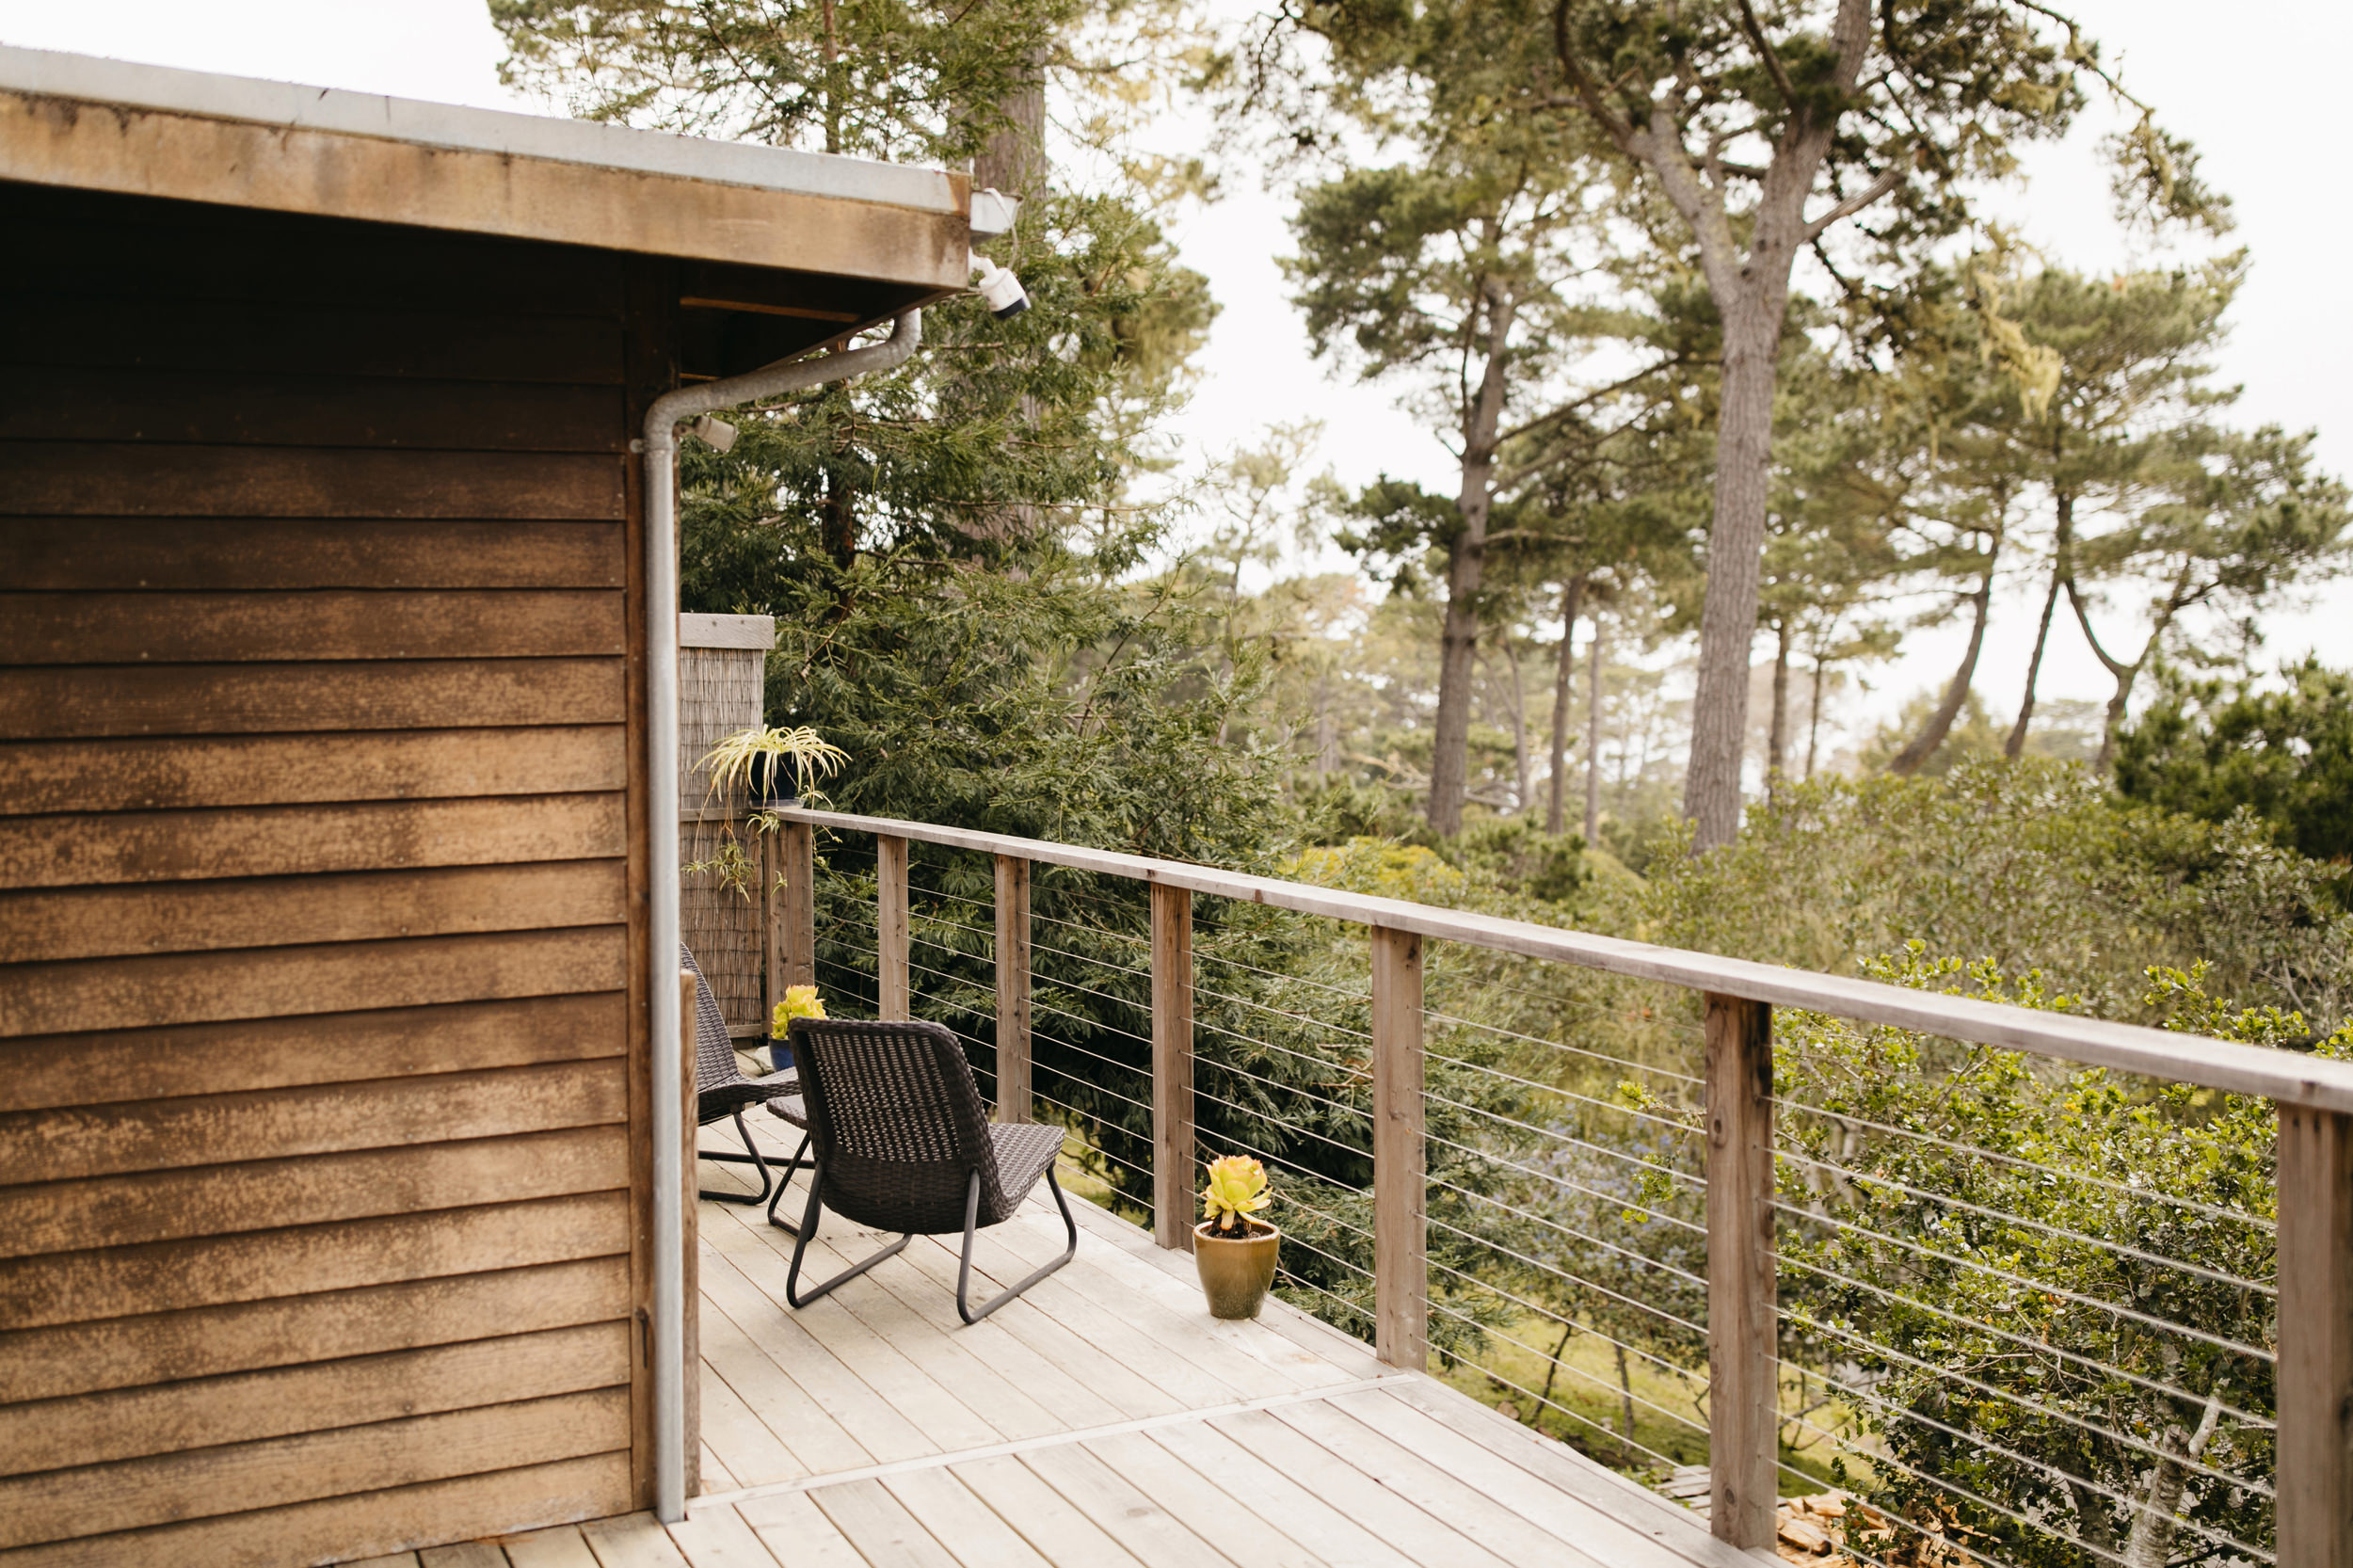 A cabin in Big Sur where the couple gets ready before their Adventurous Big Sur Elopement by Destination Elopement Photographers Colby and Jess.